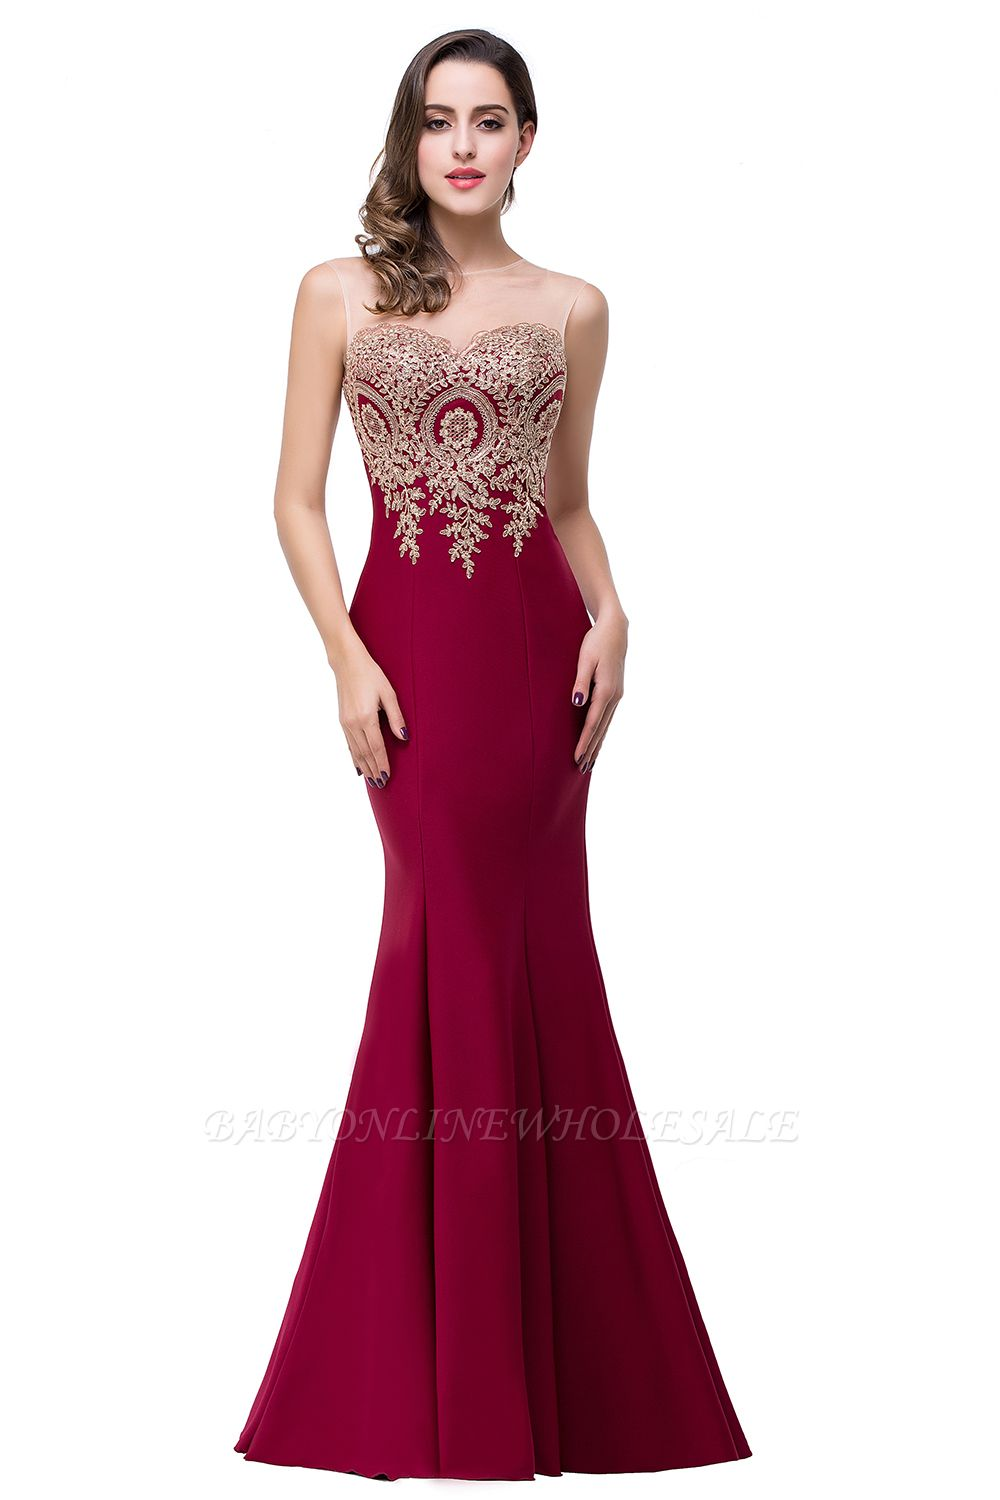 EMMY | Mermaid Floor-Length Sheer Prom Dresses with Rhinestone Appliques